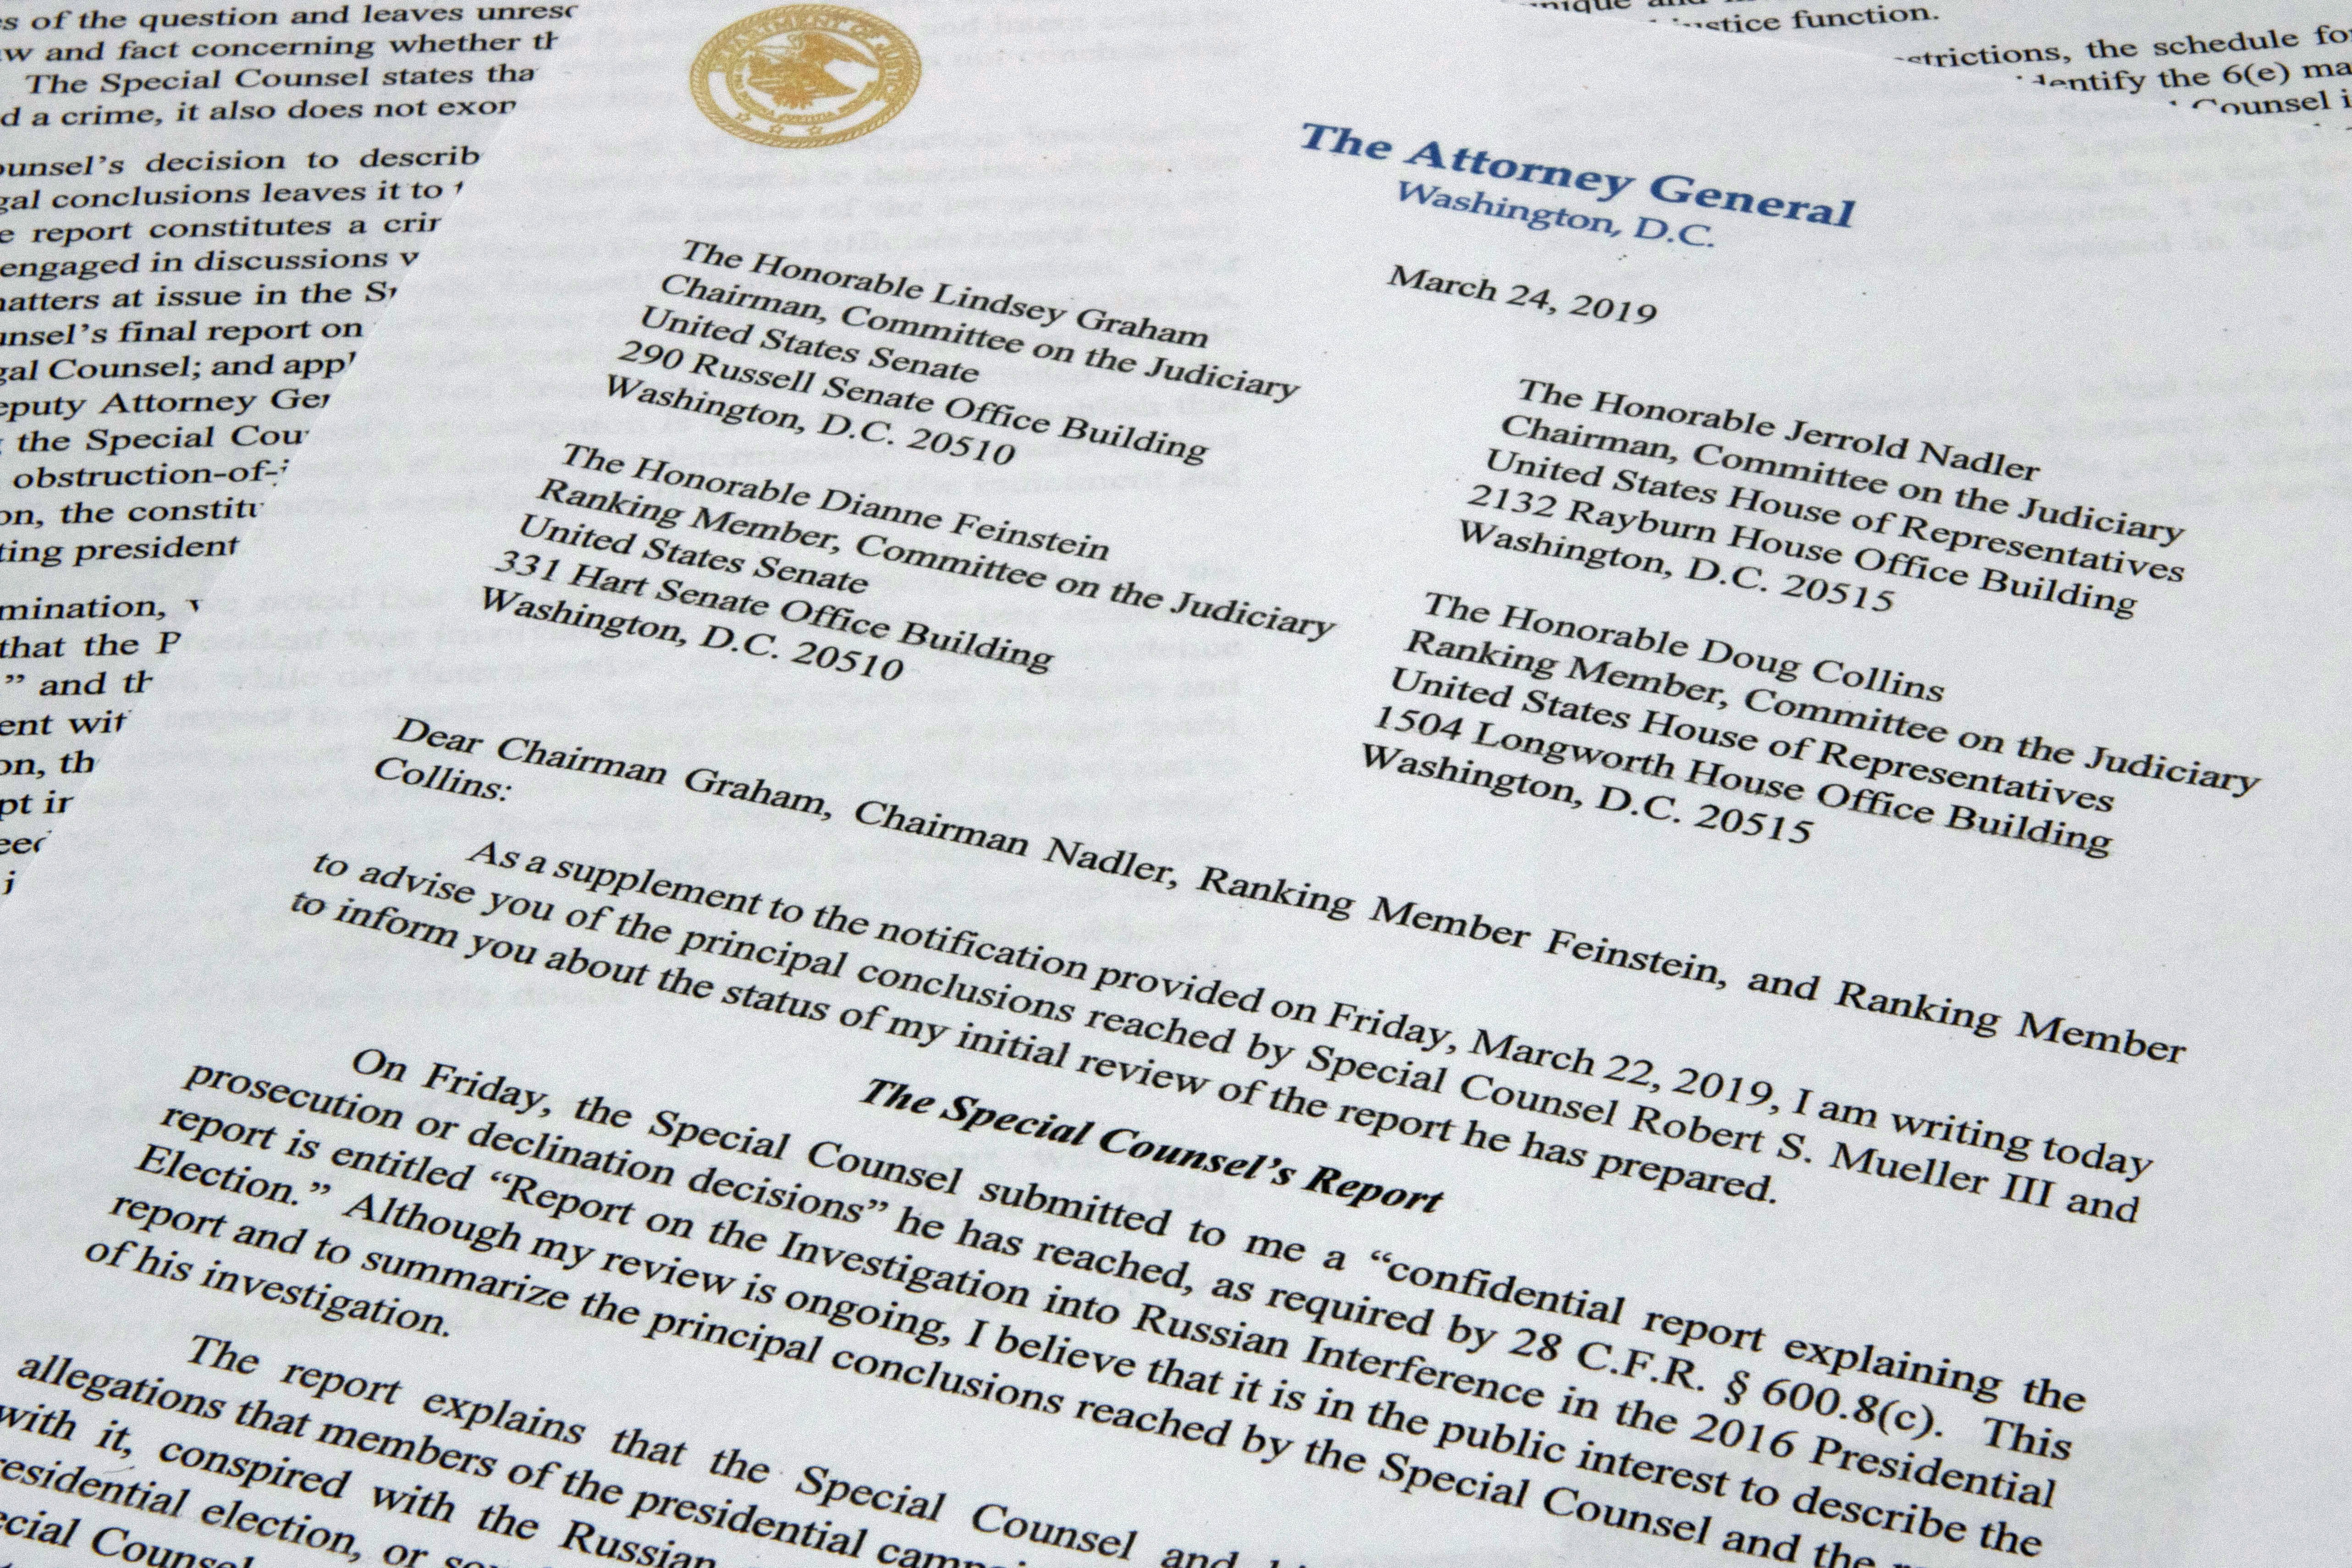 FILE - The letter from Attorney General William Barr to Congress on the conclusions reached by special counsel Robert Mueller in the Russia probe, March 24, 2019.